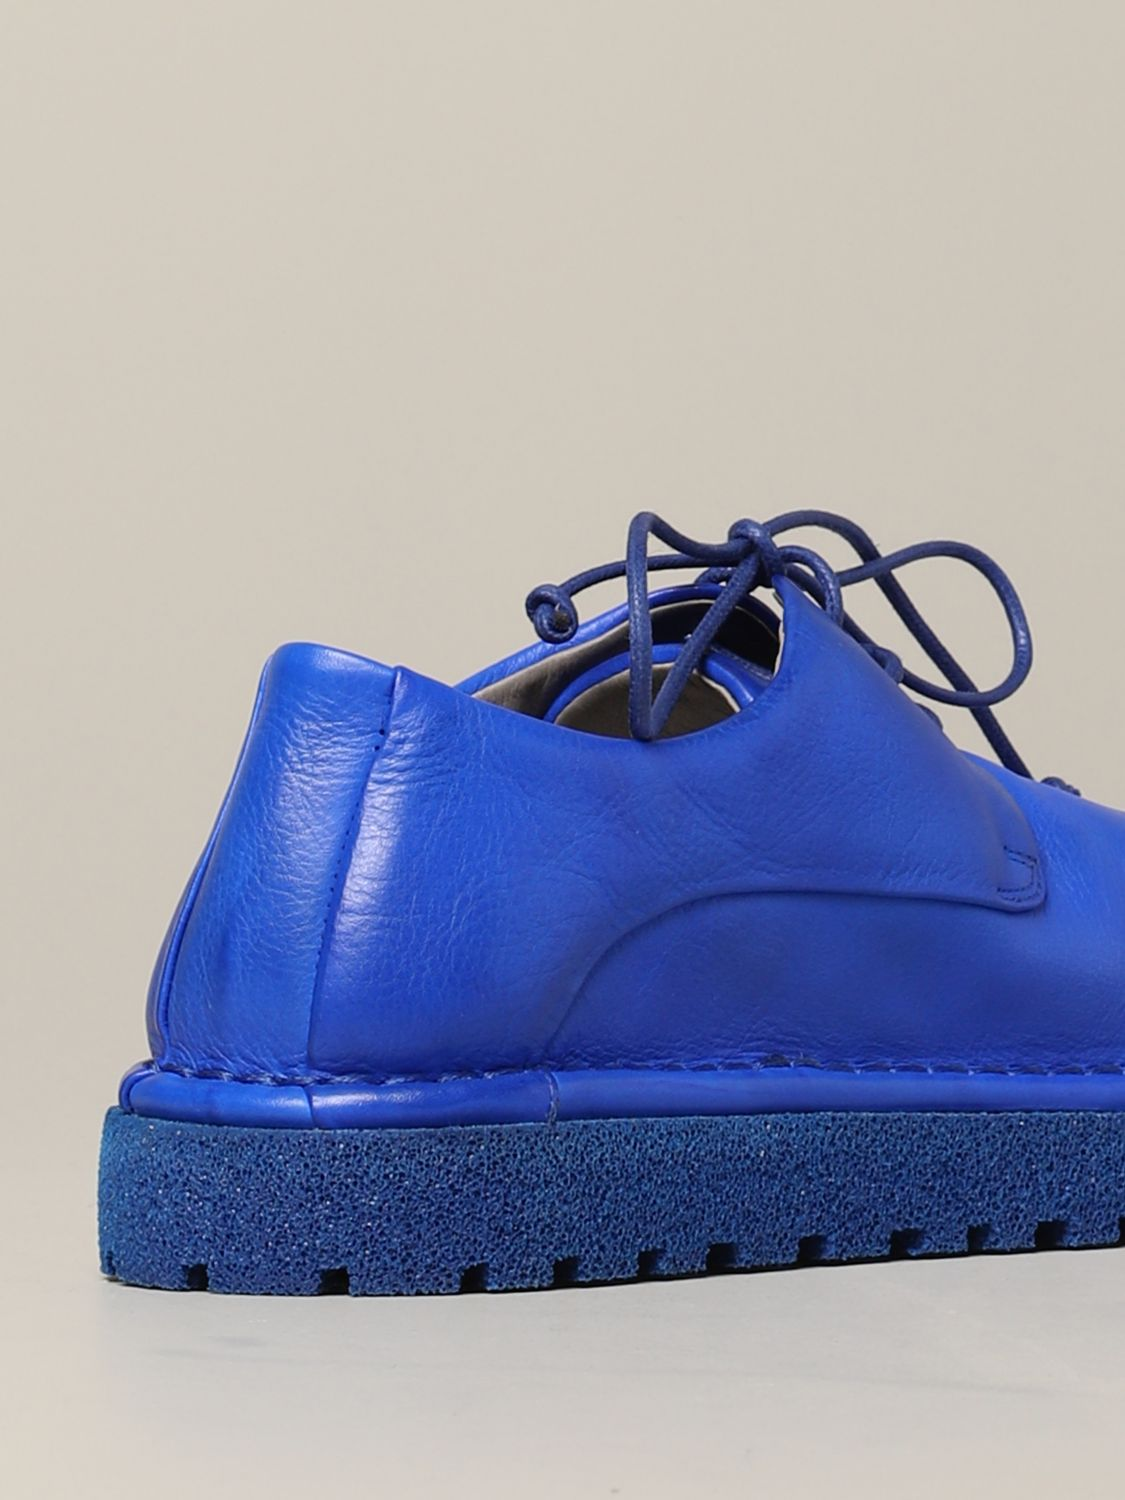 Marsèll Derby Pallottola pomice in leather blue 5